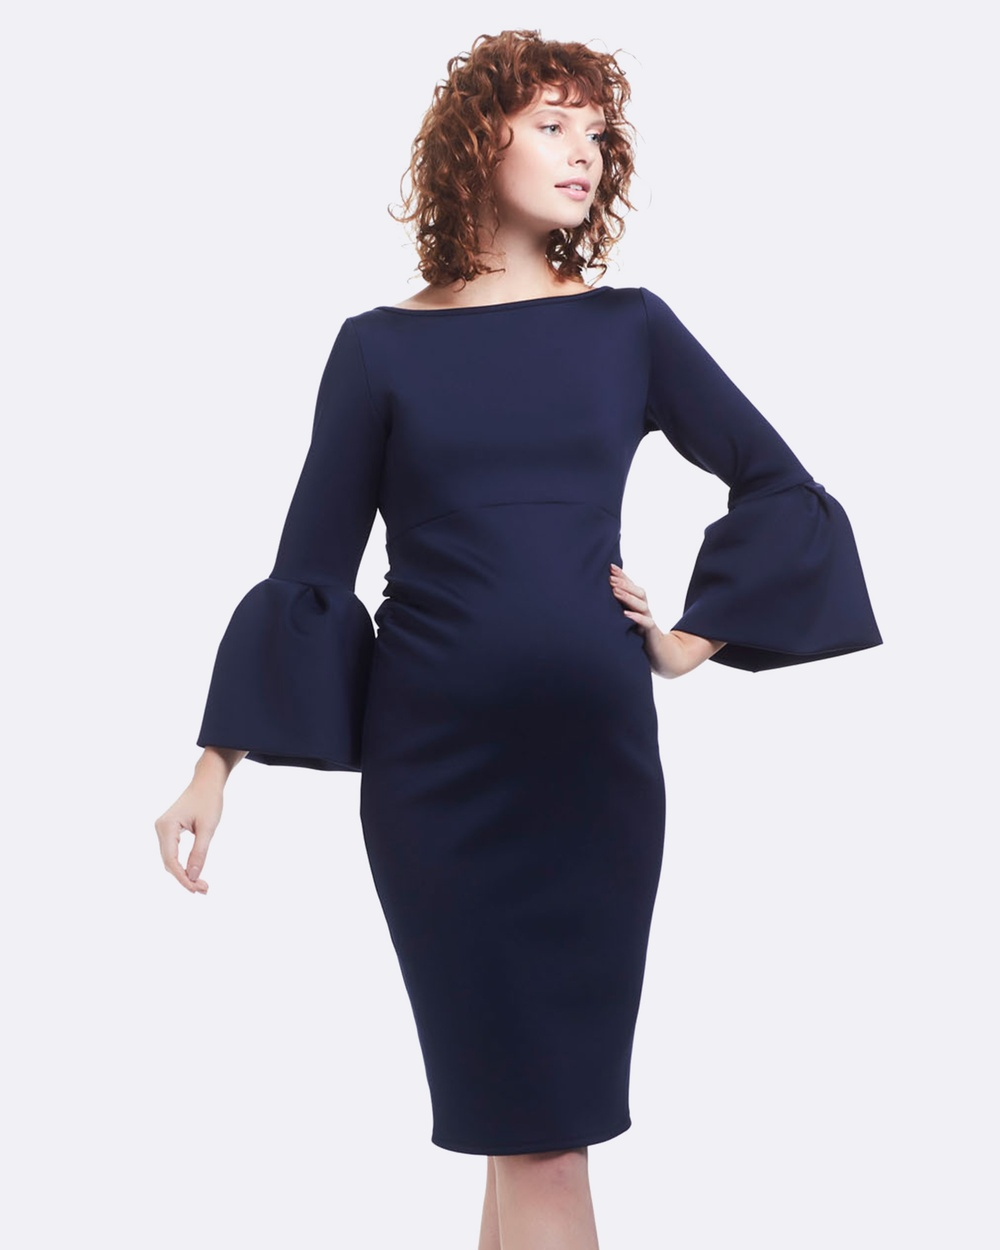 Soon Maternity Myra Ruffle Maternity Dress Dresses Navy Scuba Myra Ruffle Maternity Dress